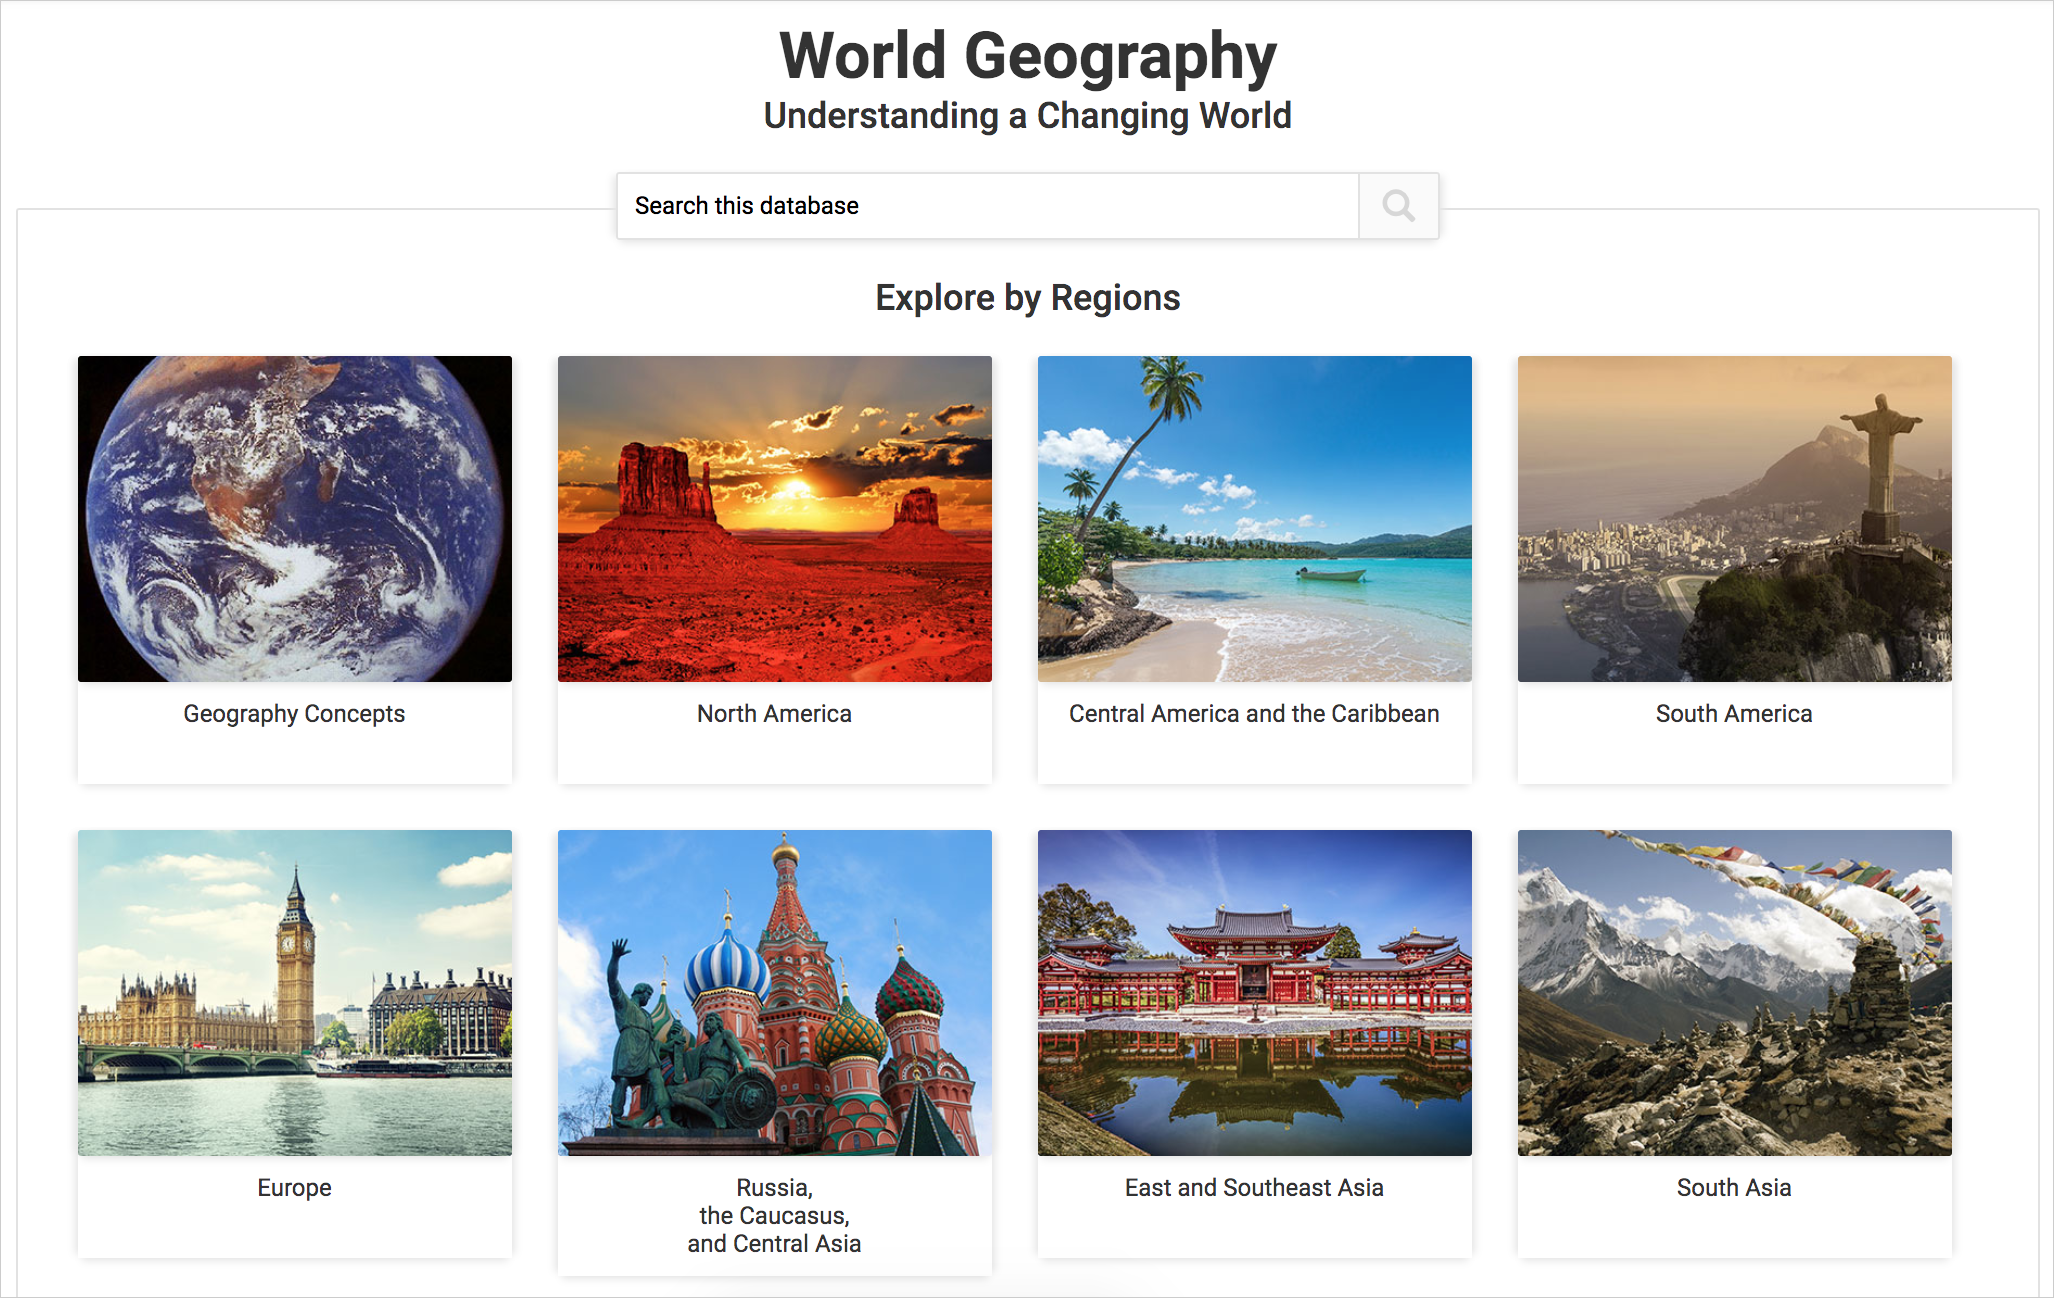 World Geography cover image